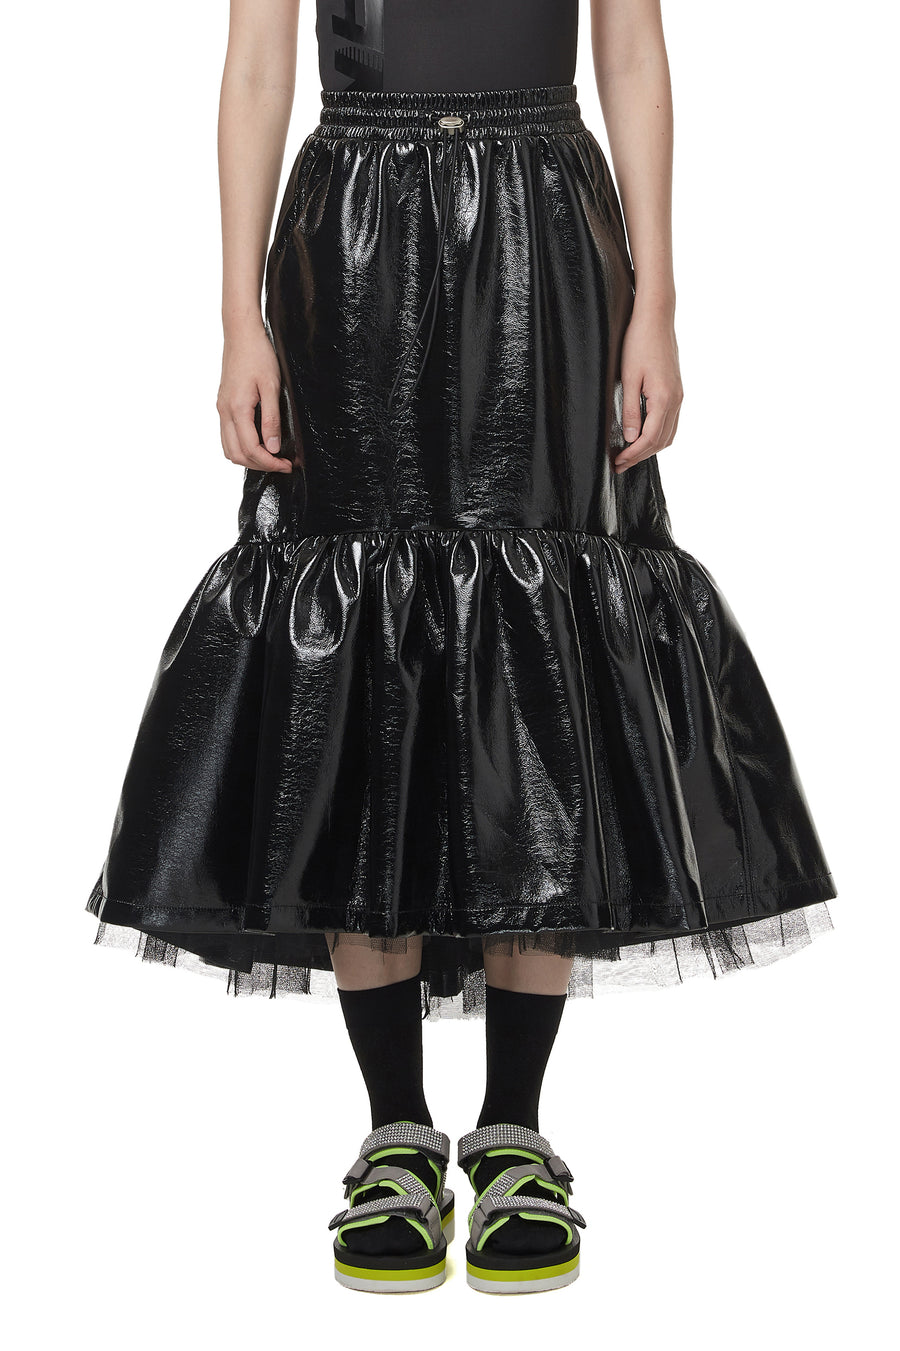 Black Faux Patent Leather Tulle Skirt